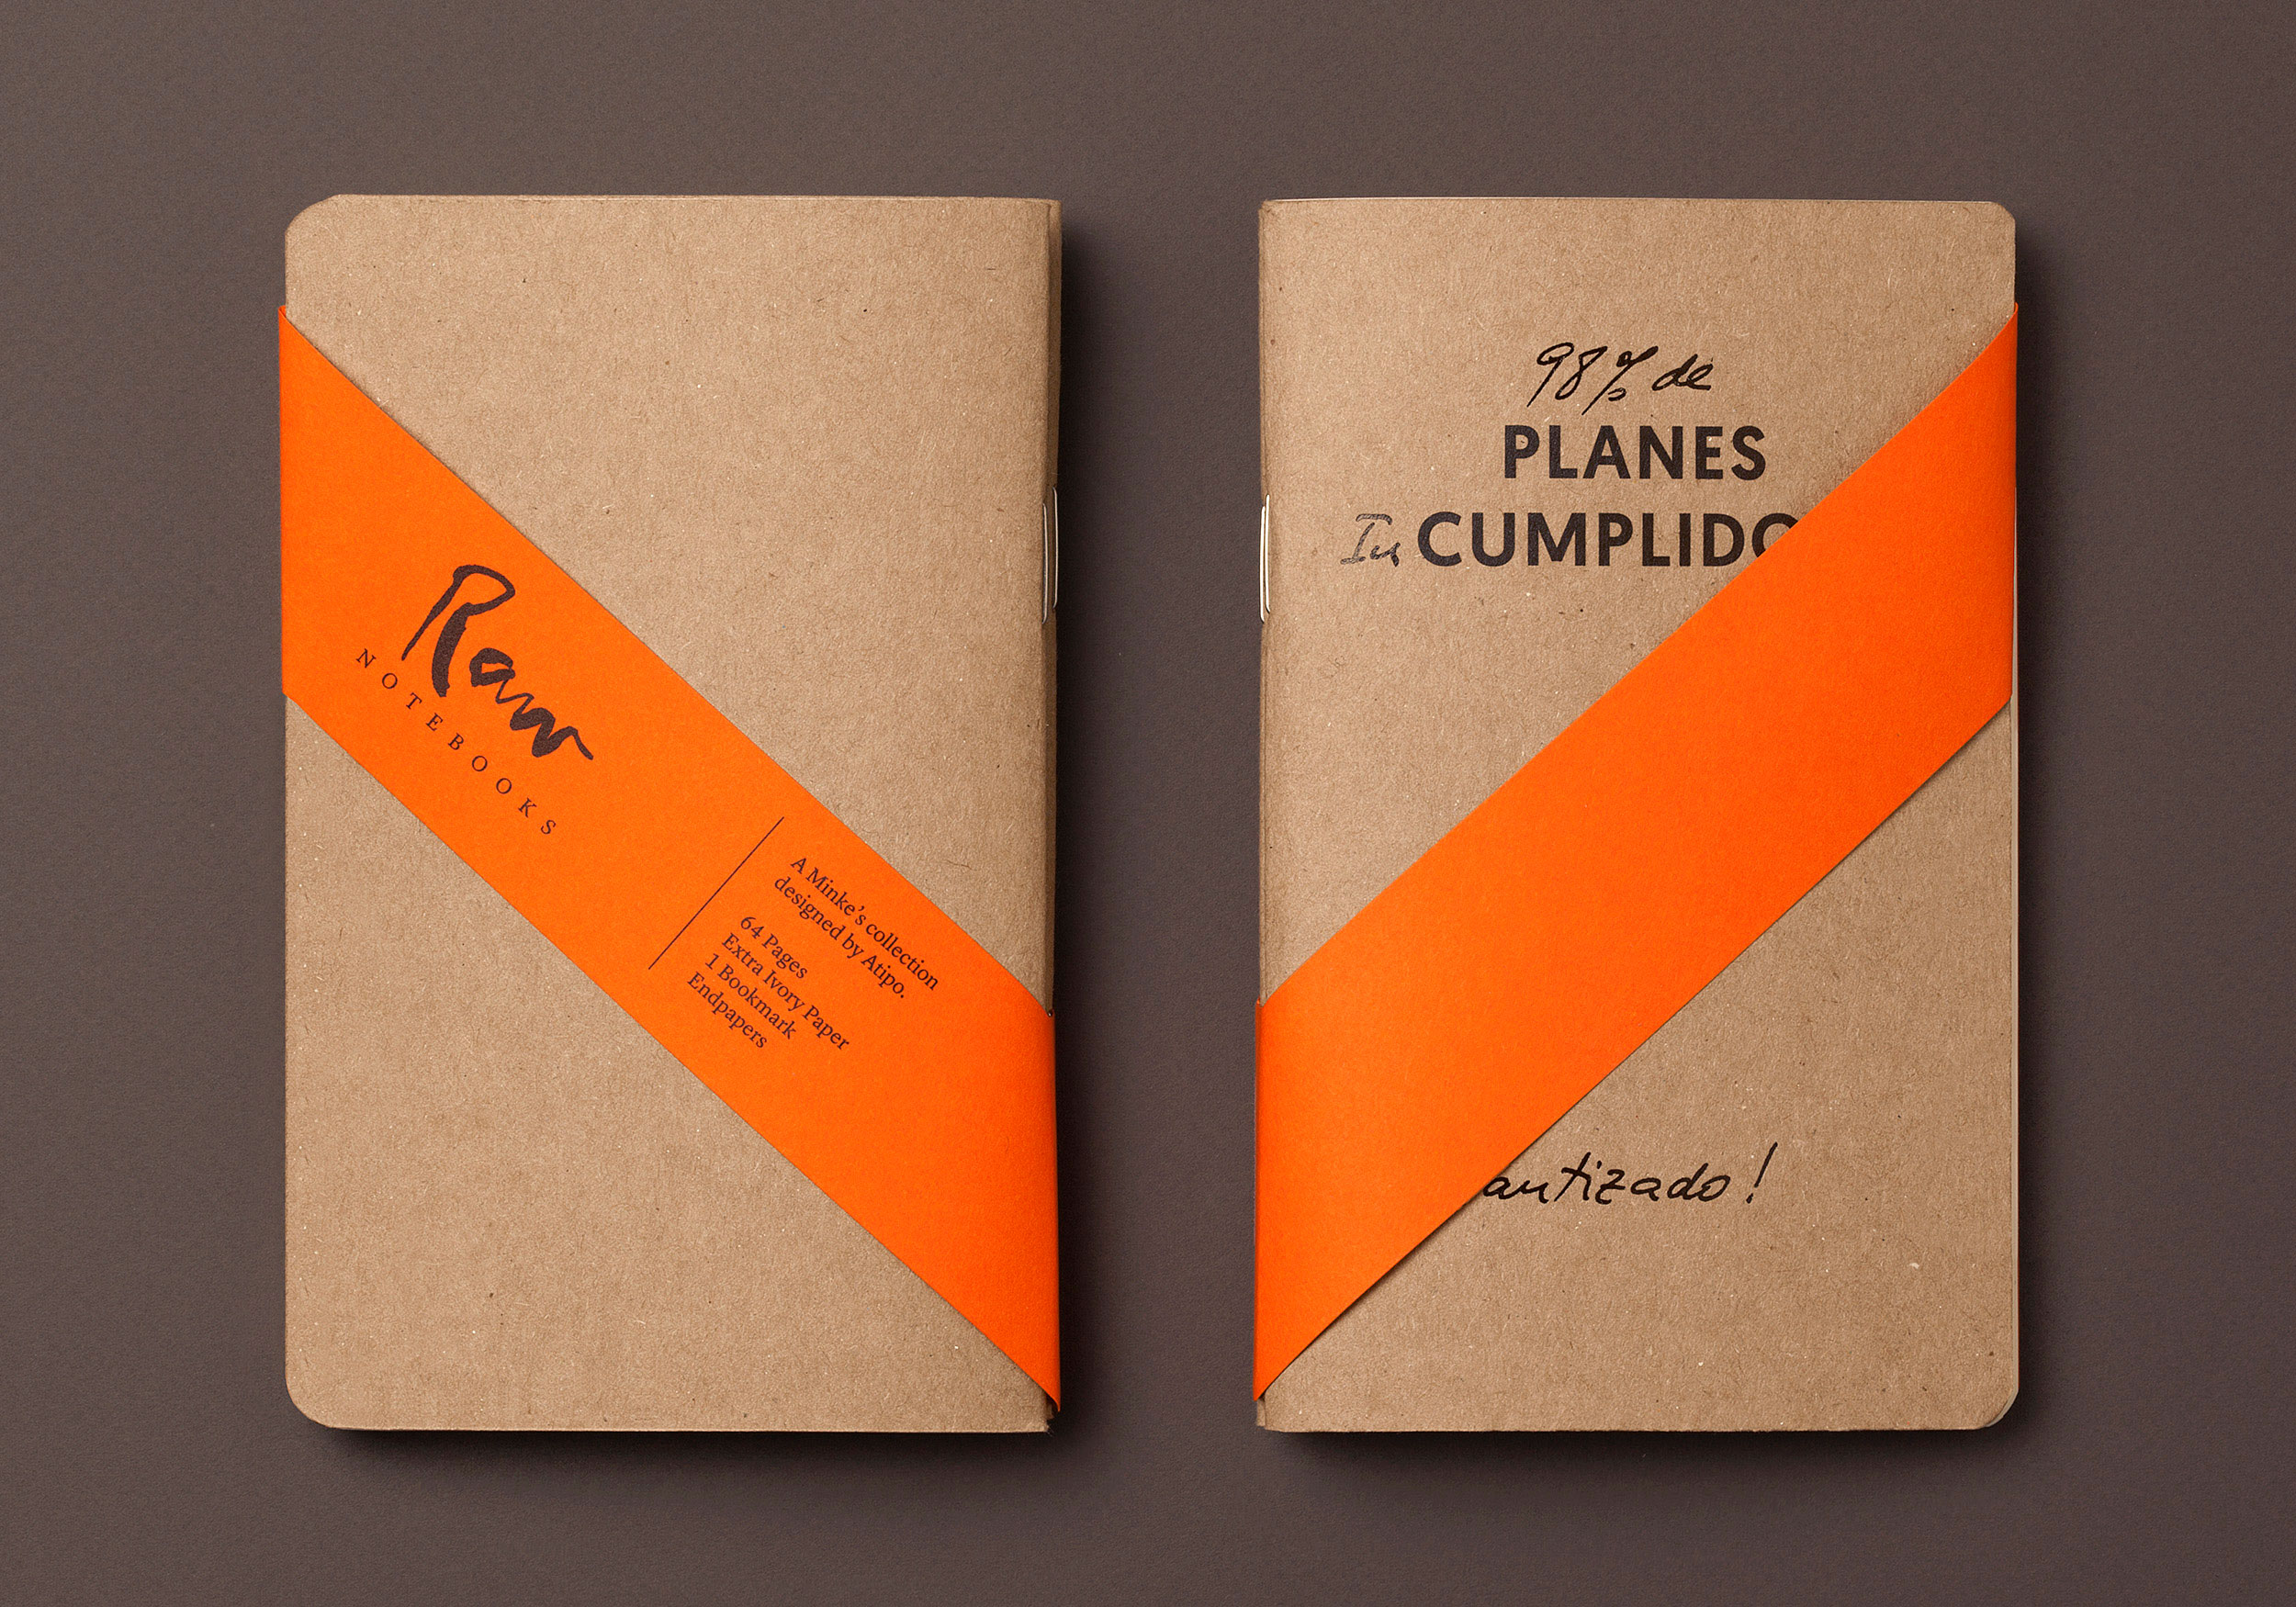 Planes cumplidos Raw Notebooks with band